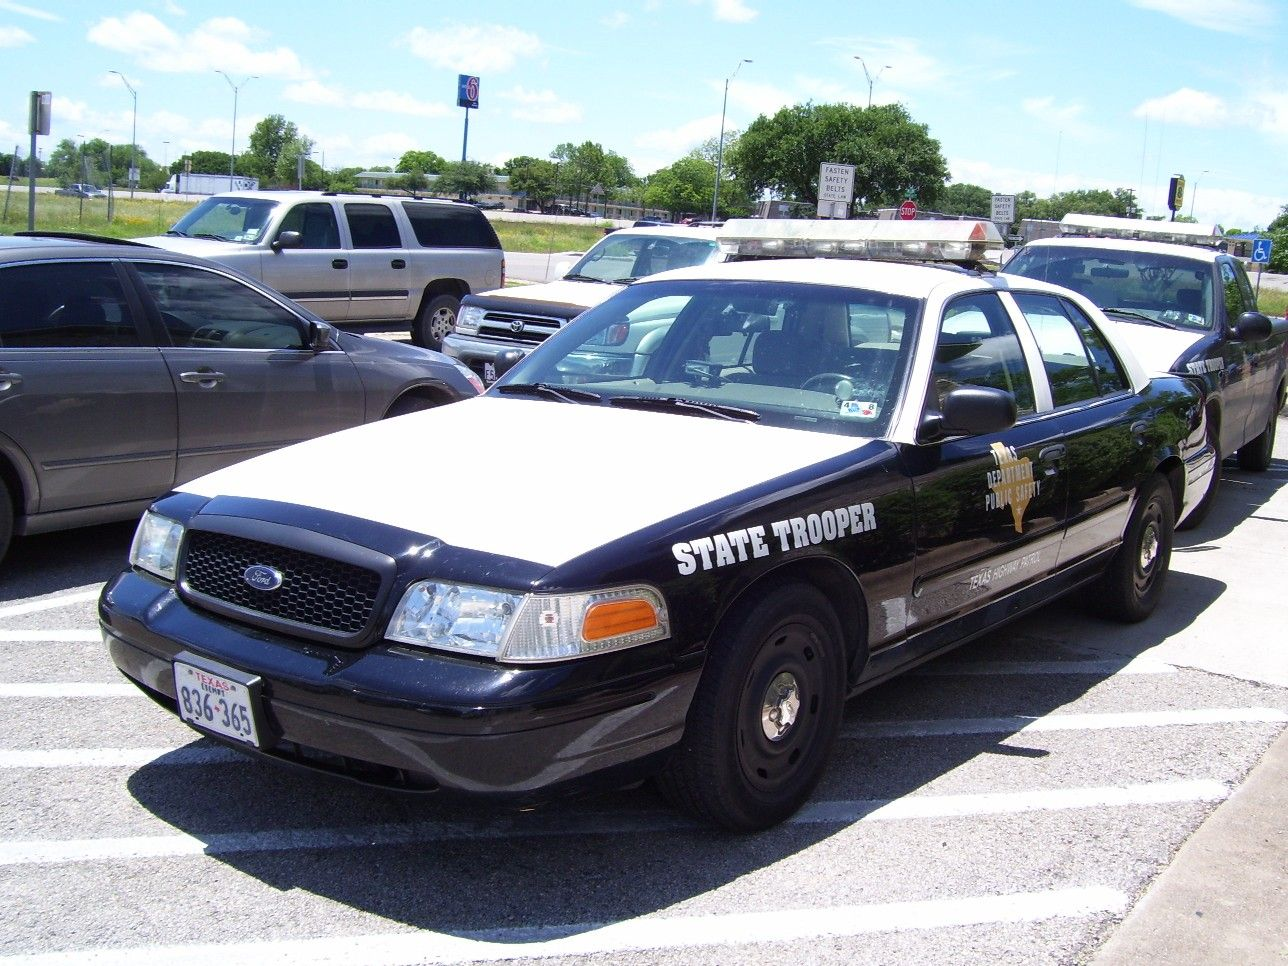 TX Texas Department of Public Safety Police cars